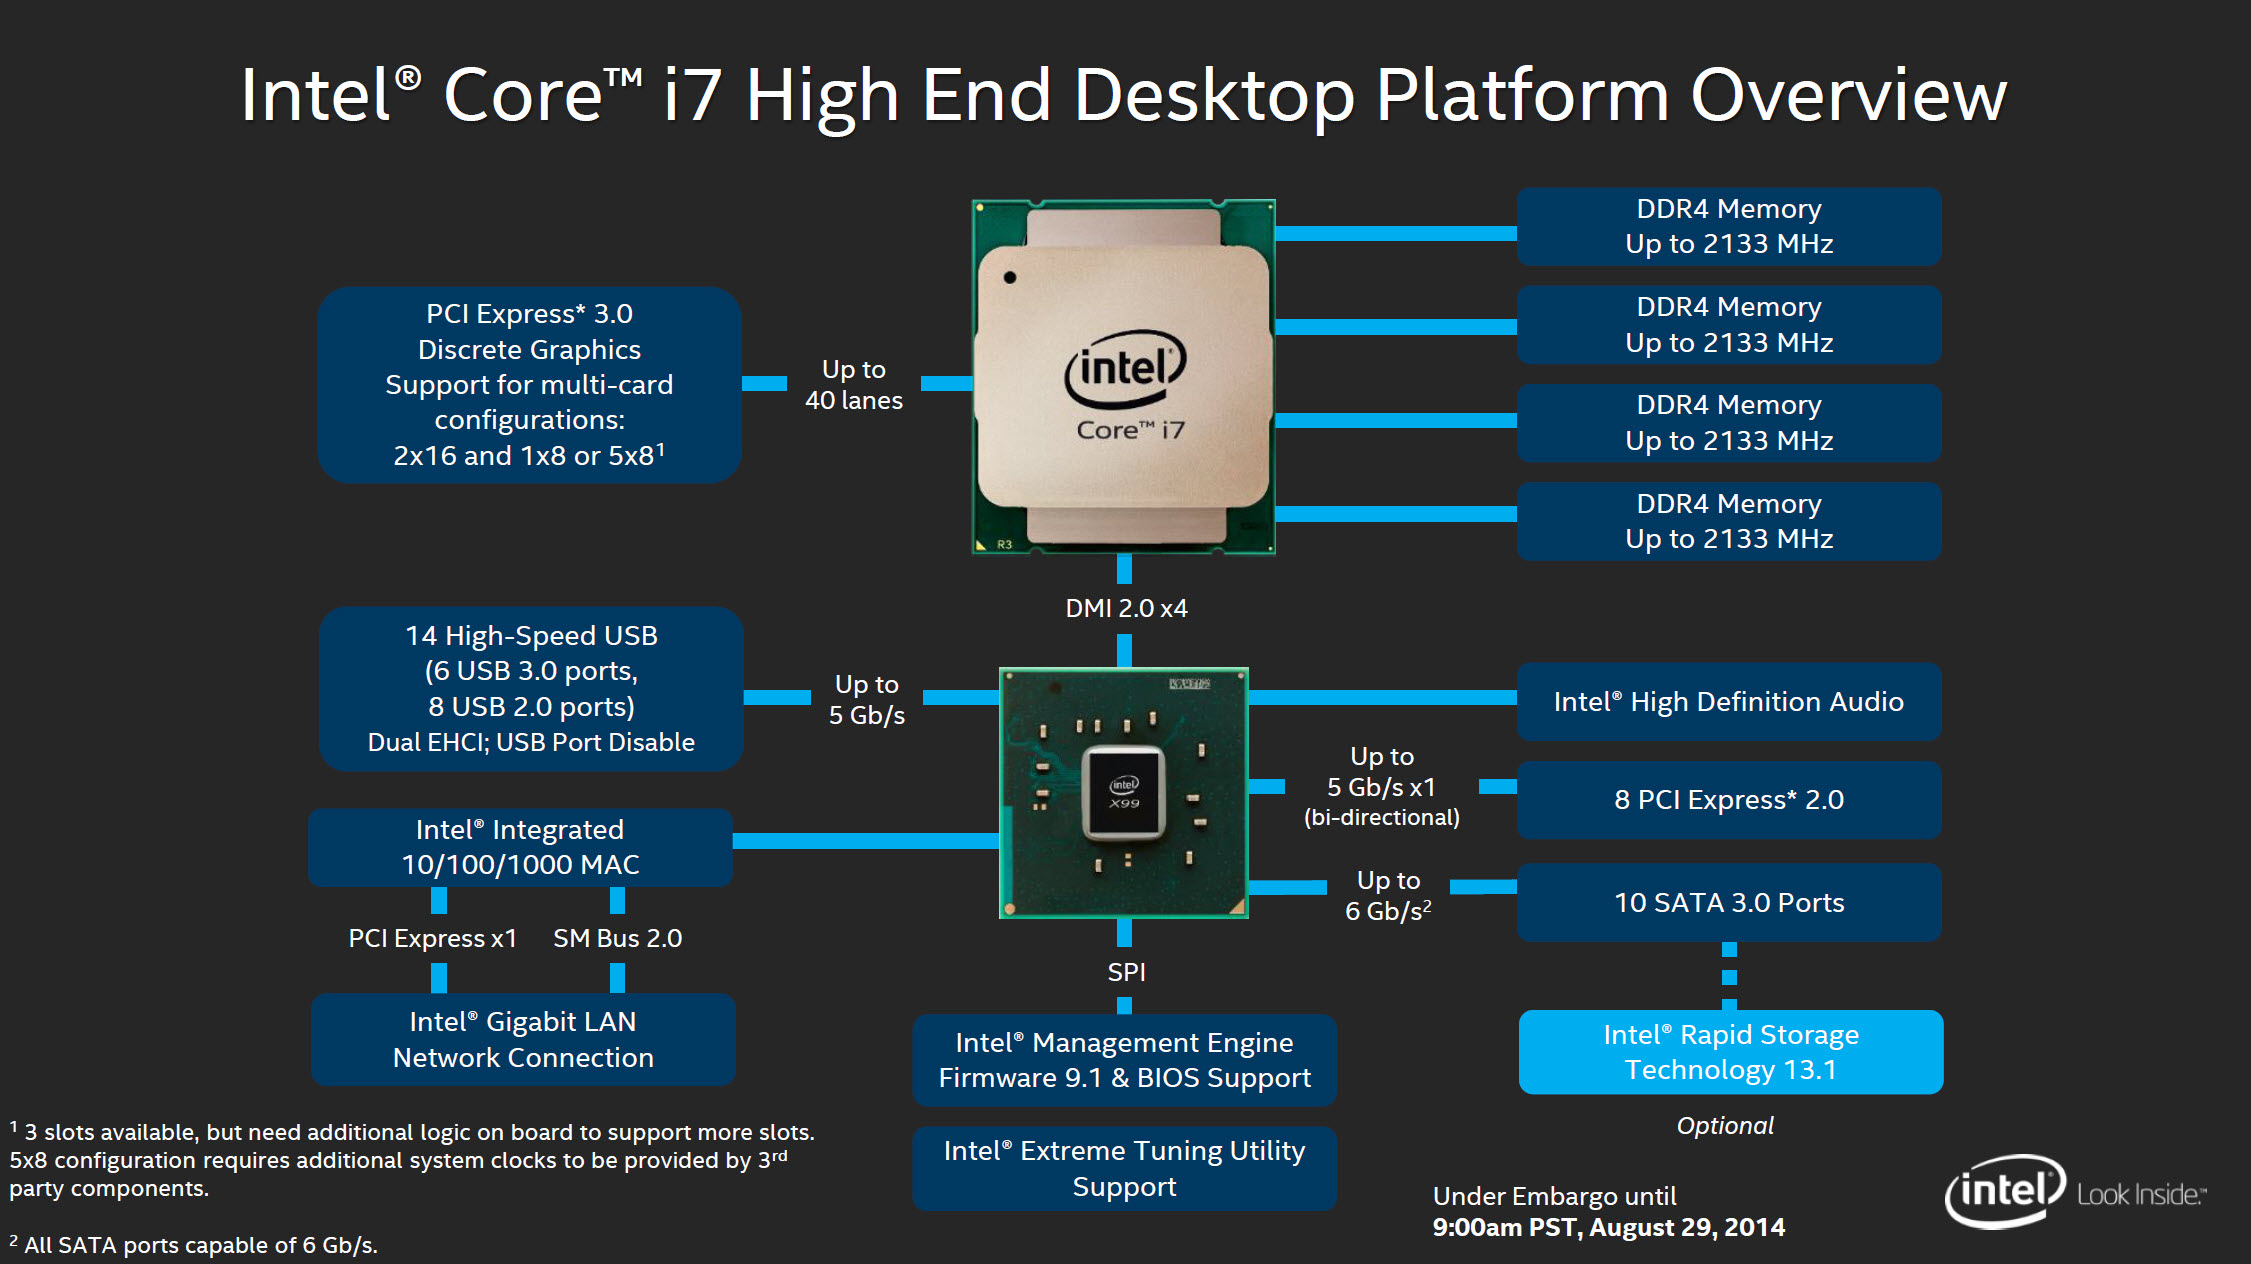 Intel X99 Desktop Platform Overview